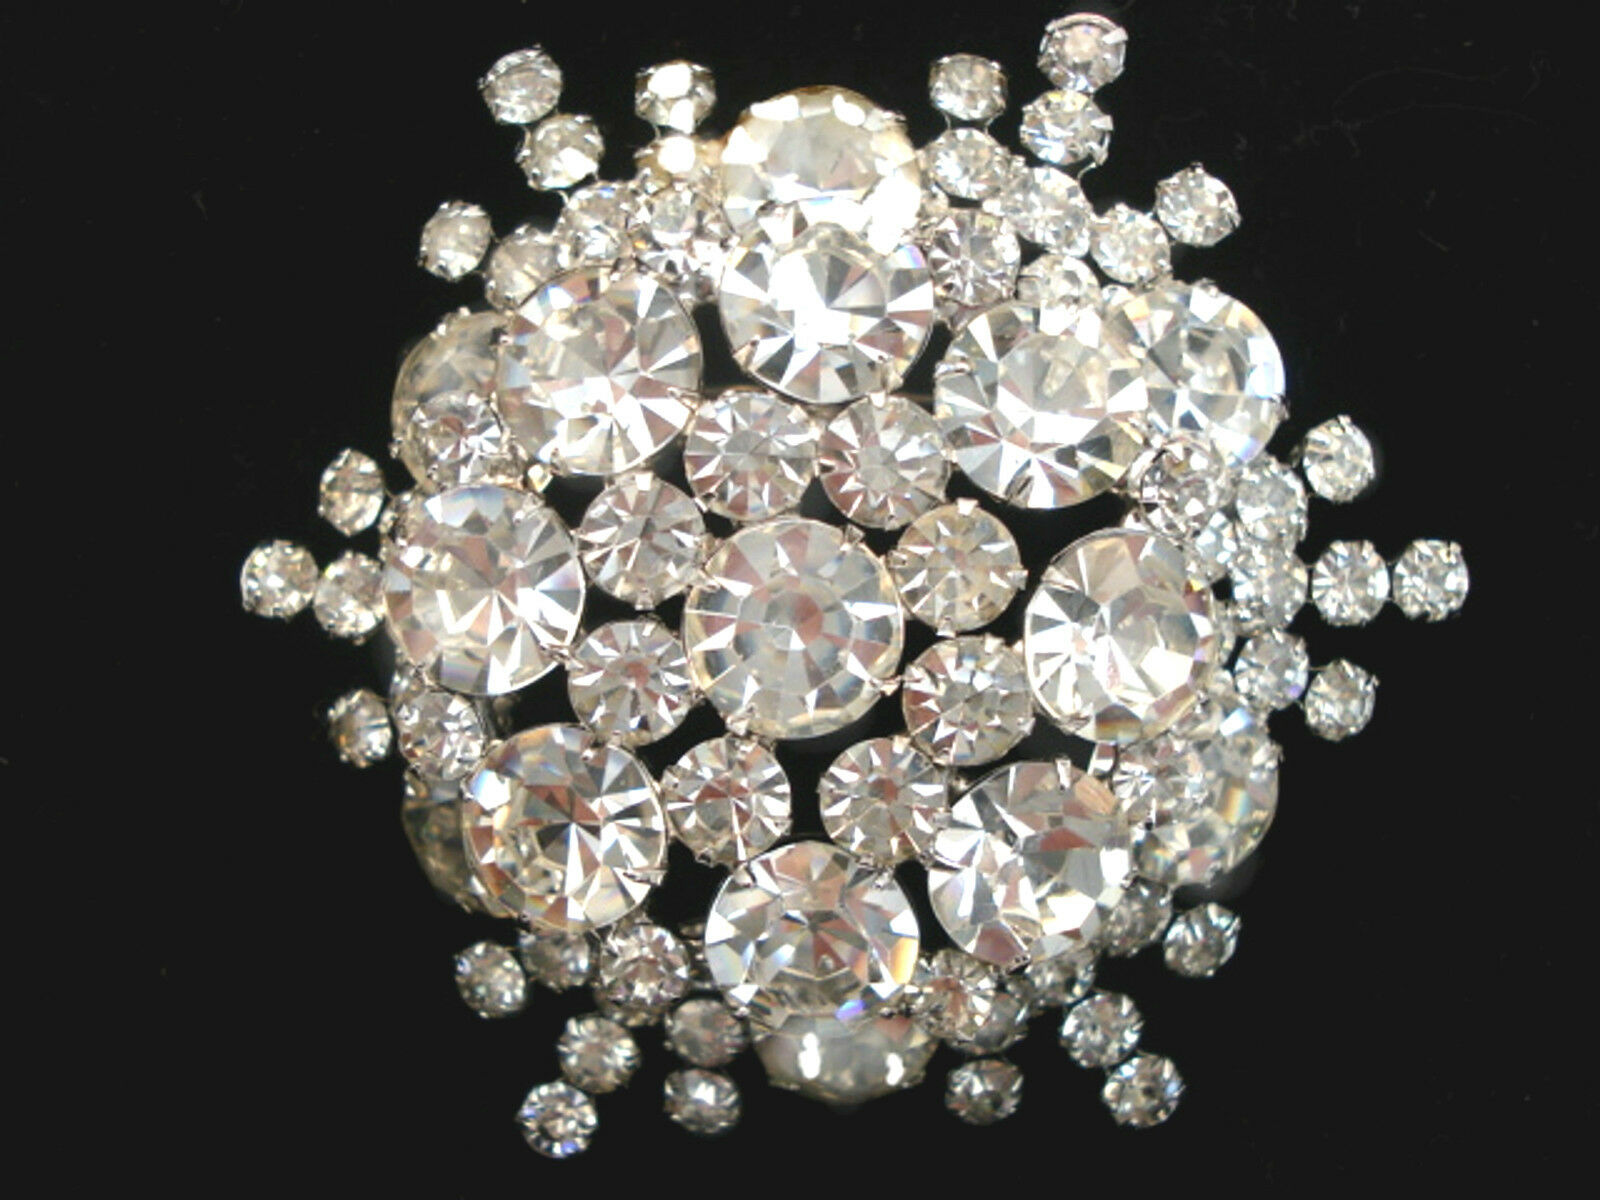 brooch peppered fine and pin midwestartobjects jewellery nouveau with genuine natural exquisite platinum art fully original jewelry rare diamond midwest diamonds hallmarked